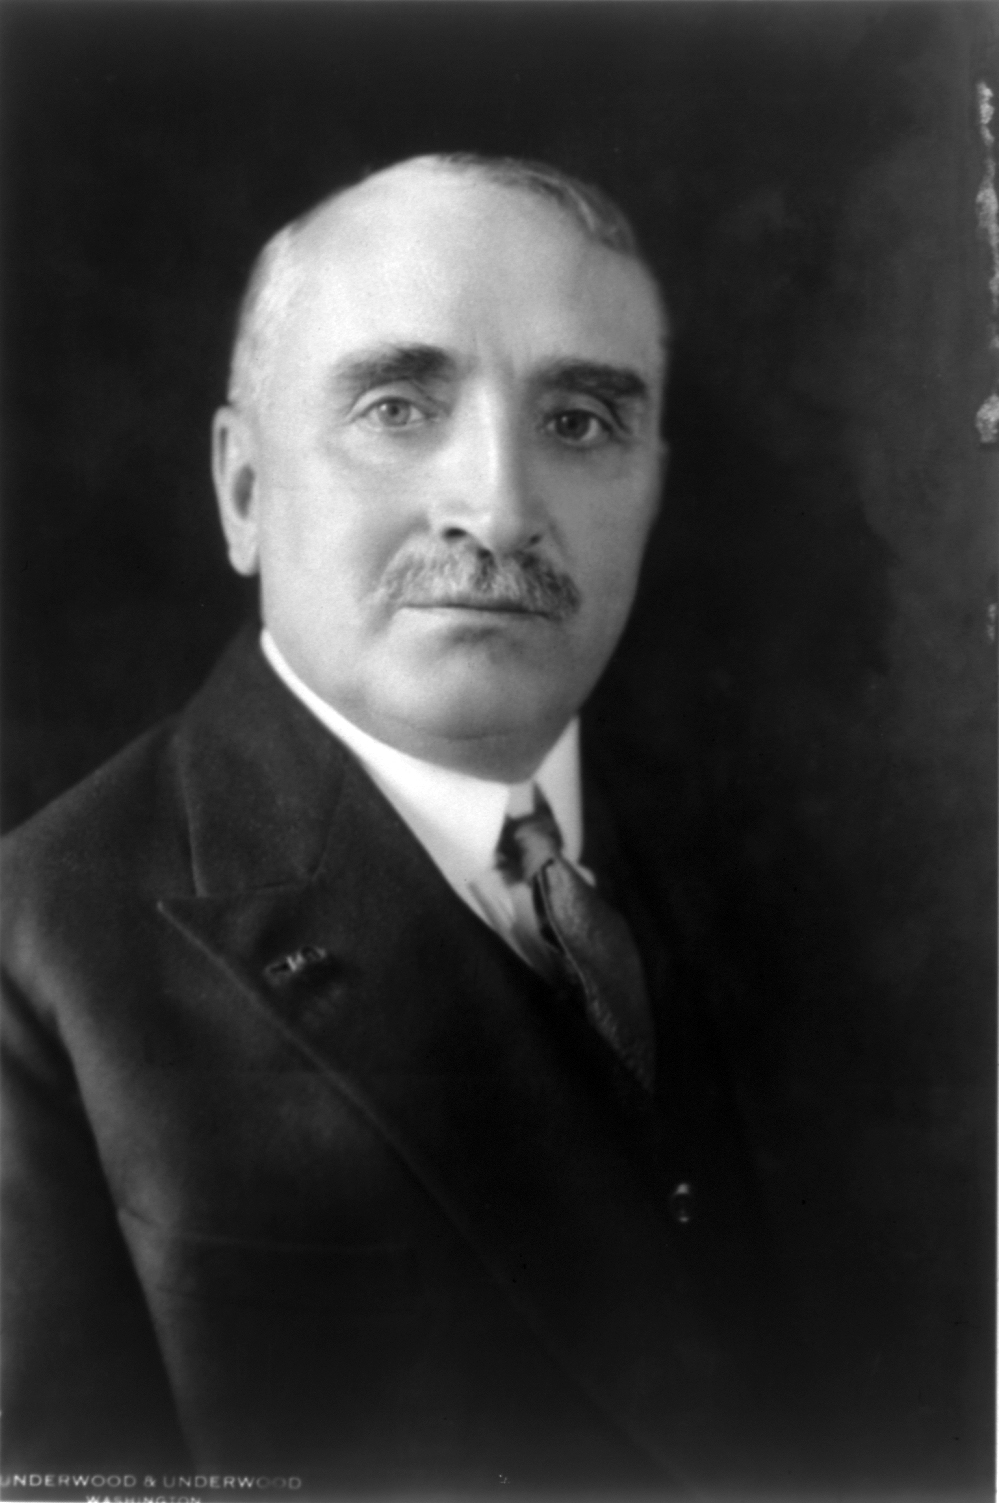 Portrait of Paul Claudel